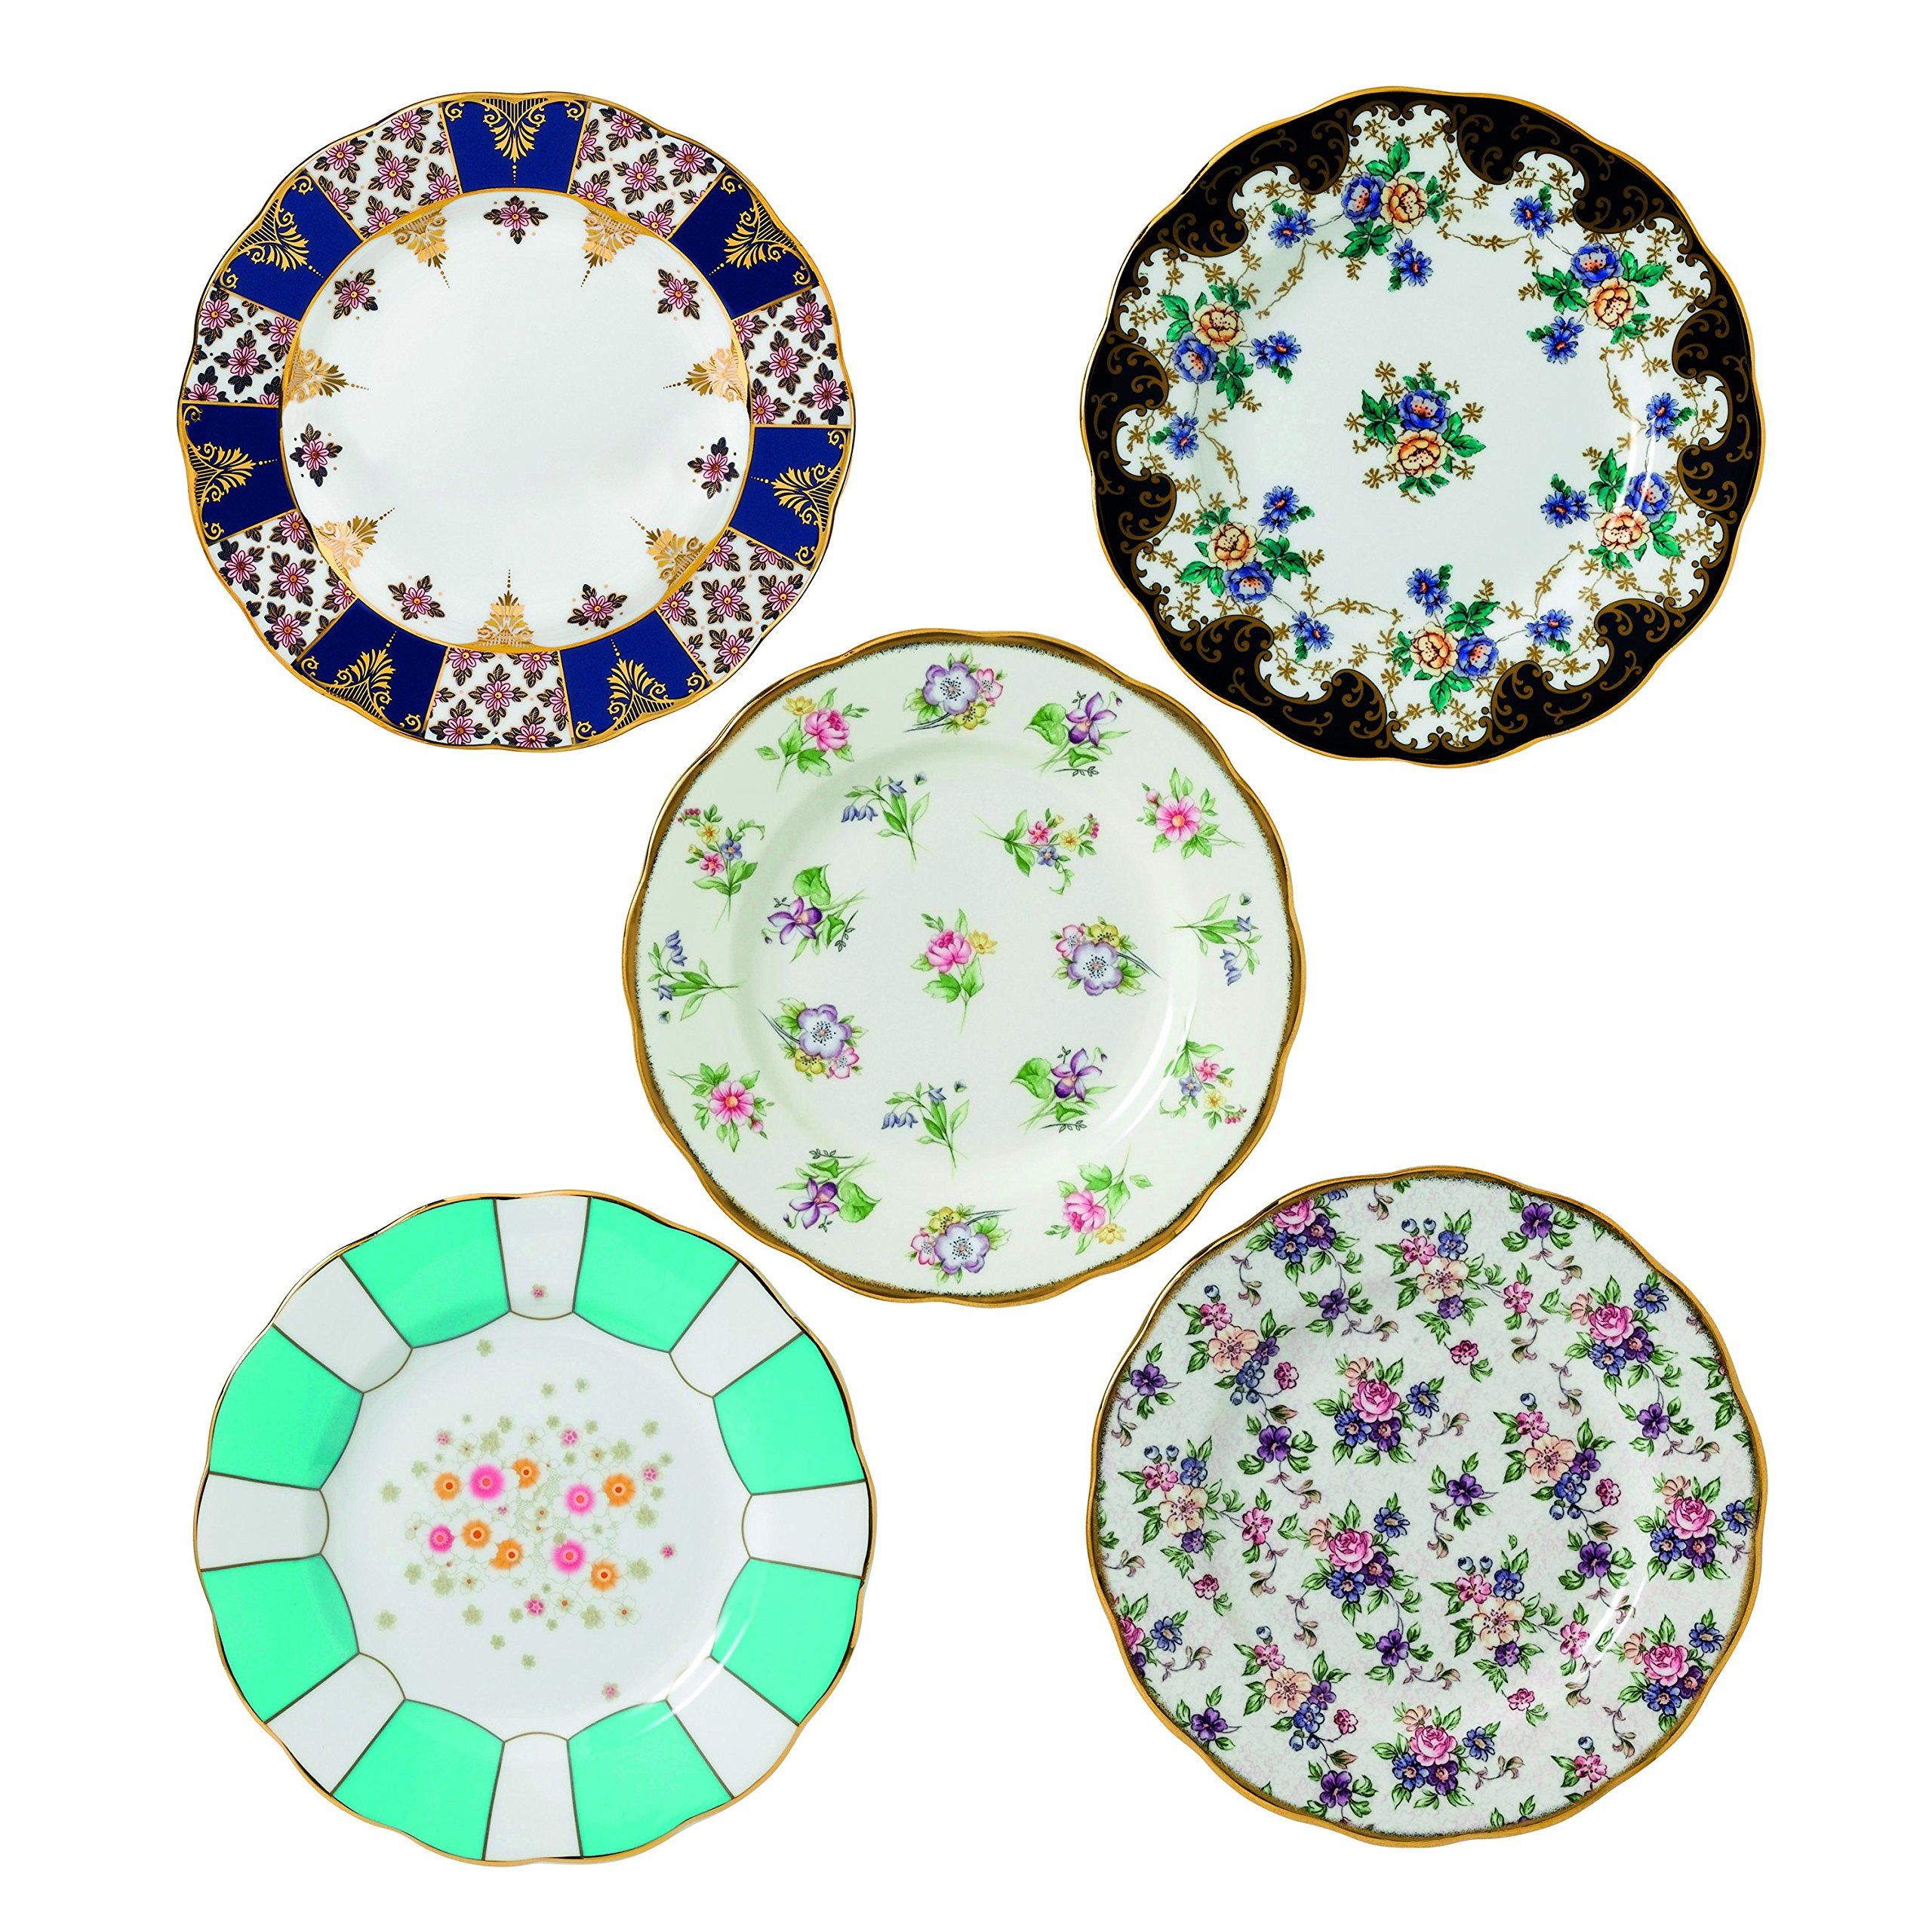 Royal Albert 5 Piece 100 Years 1900-1940 Plate Set, 8'', Multicolor